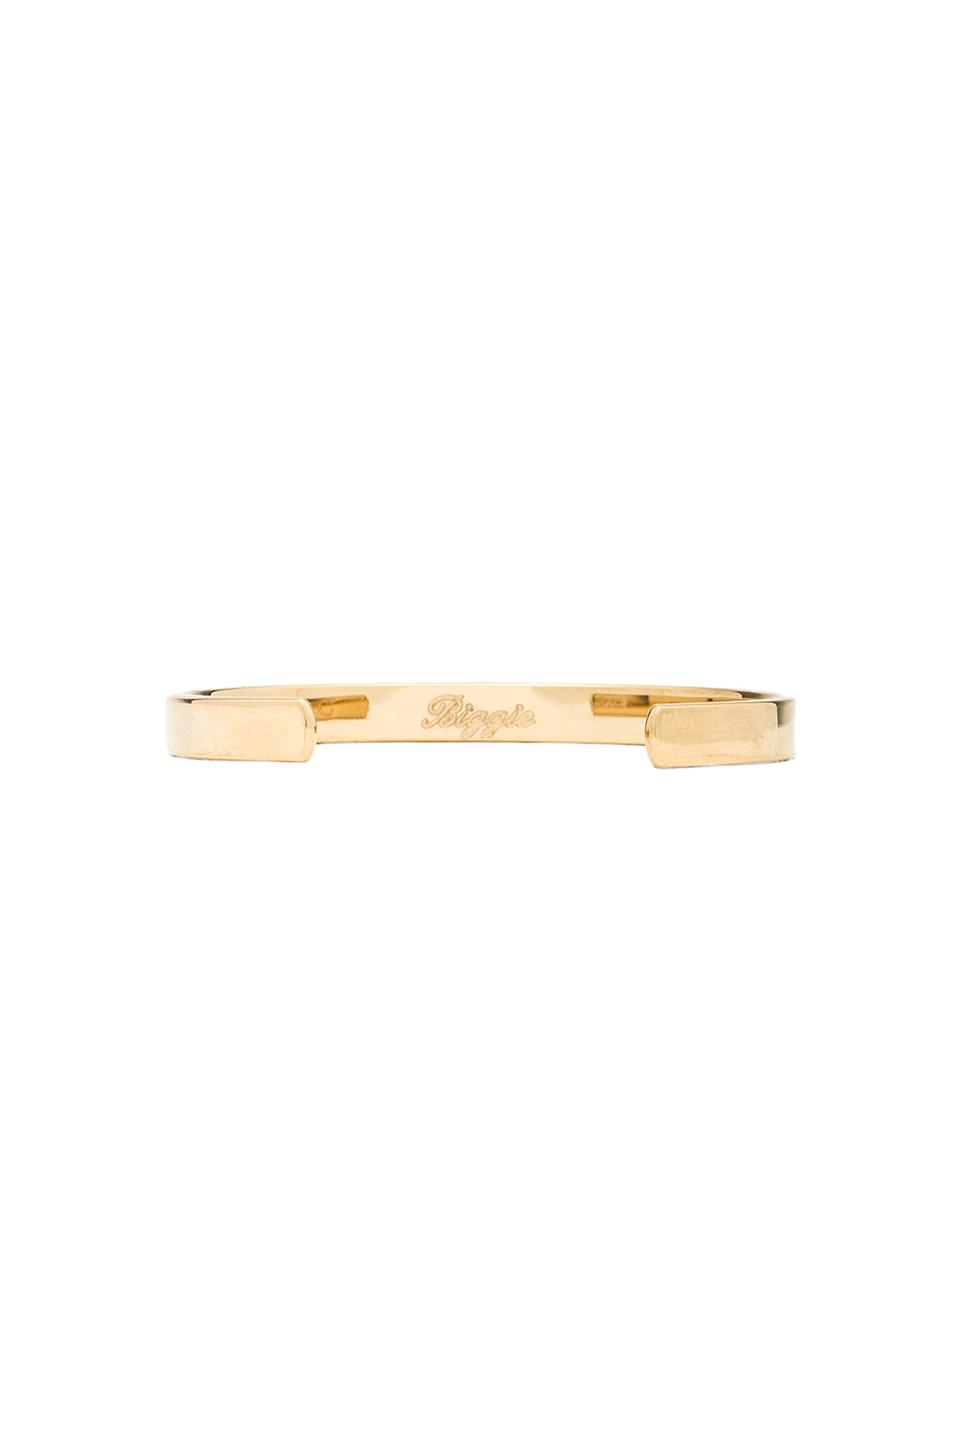 Coordinates biggie legend bracelet in gold from revolveclothing.com